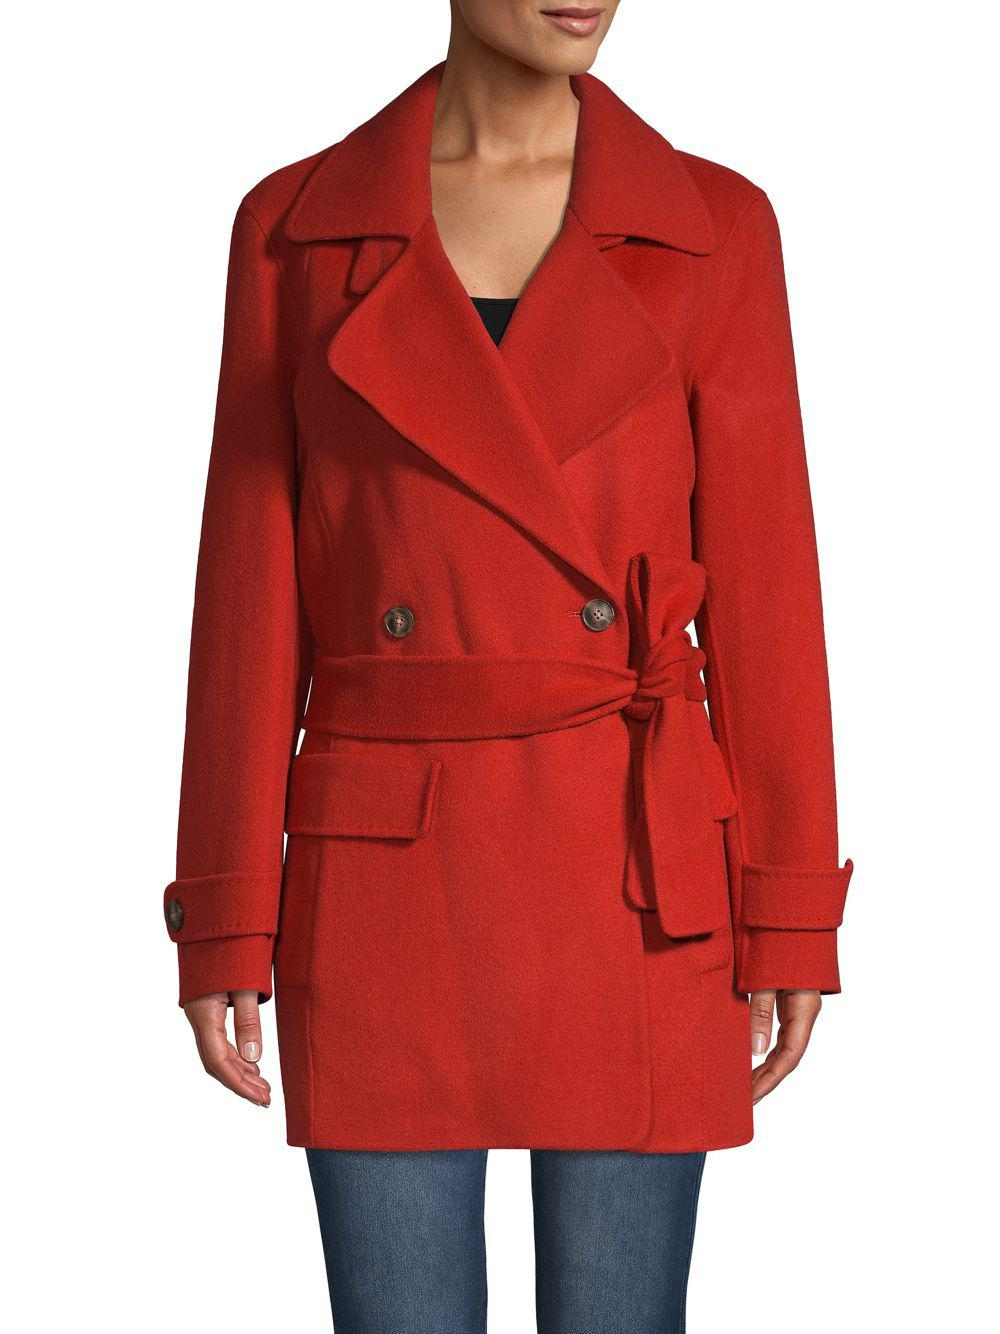 Halston Heritage Self-tie Double-breasted Coat in Red - Lyst a1f473534